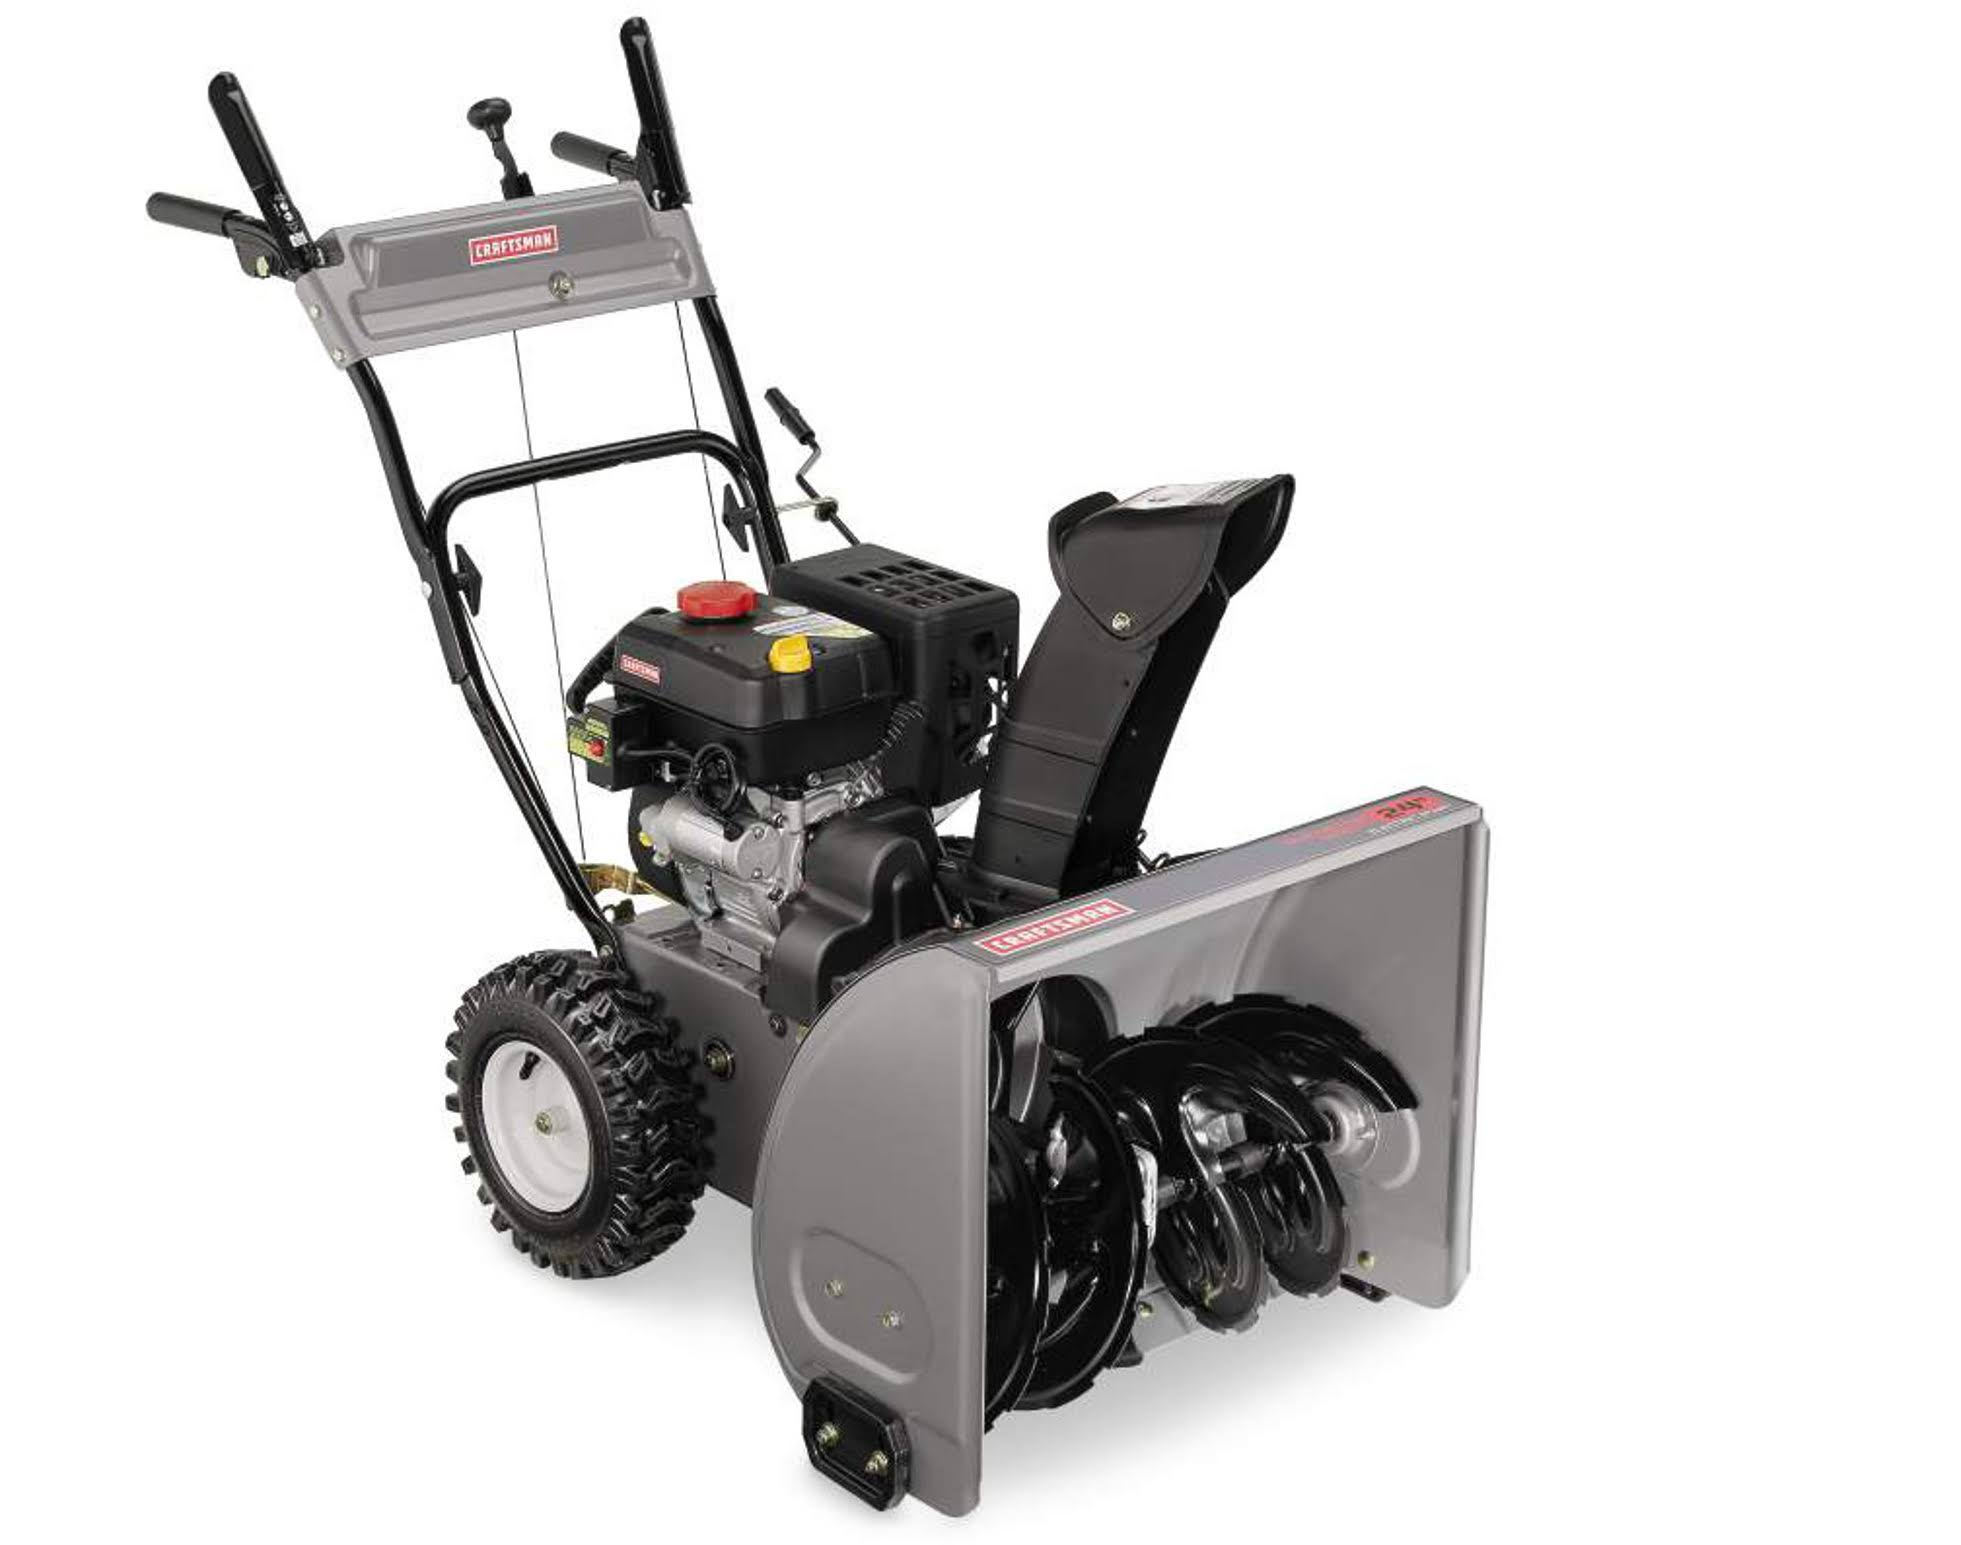 Compare Electric Snow Blowers : Craftsman cc dual stage snowblower g